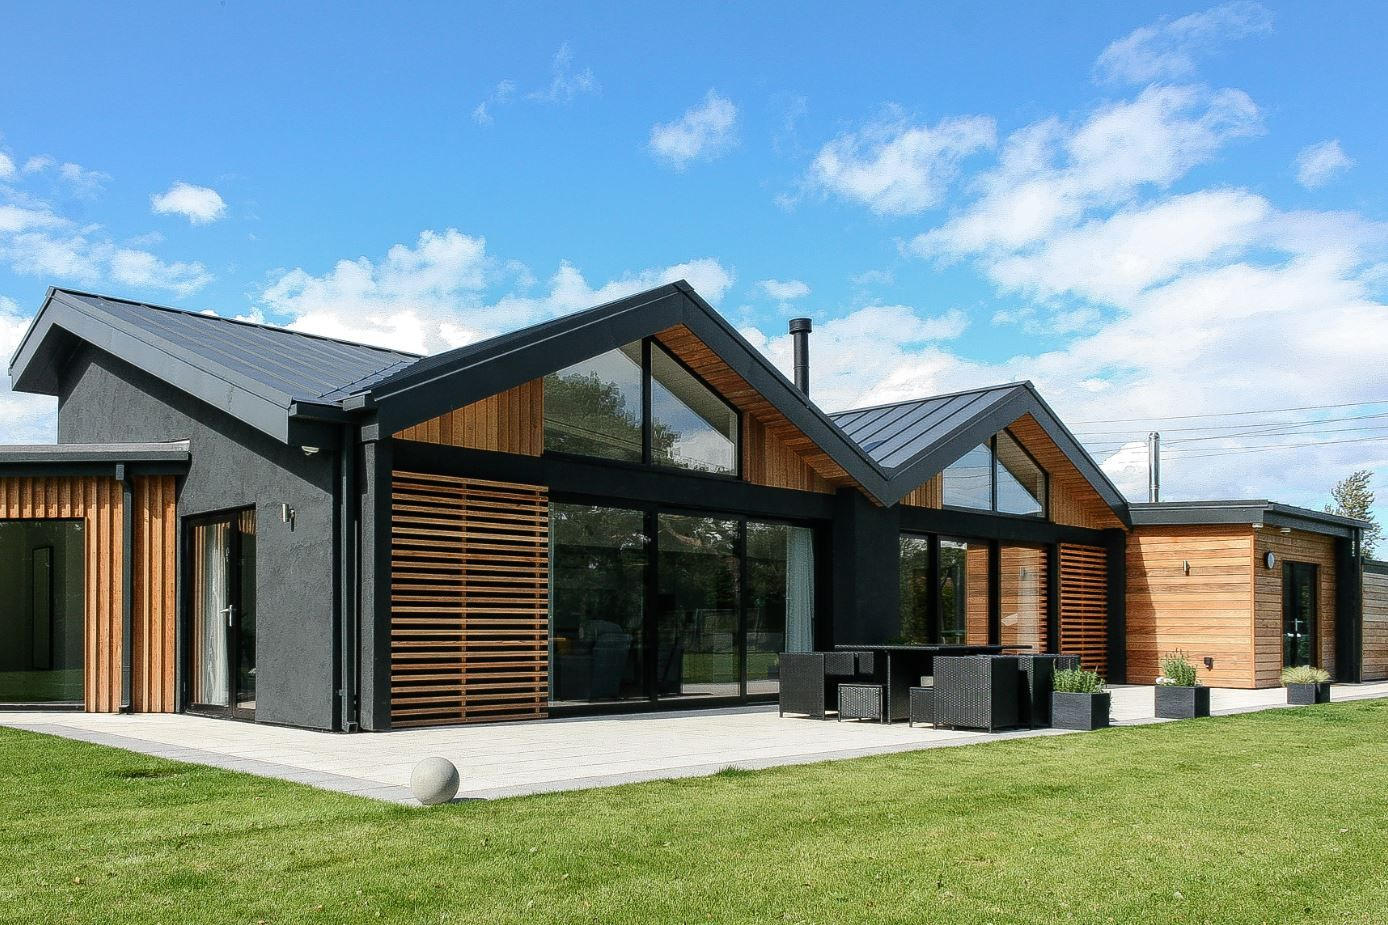 Contemporary disability bungalow in harrogate with cedar cladding contemporary disability bungalow in harrogate with cedar cladding and dark grey through colour render malvernweather Choice Image